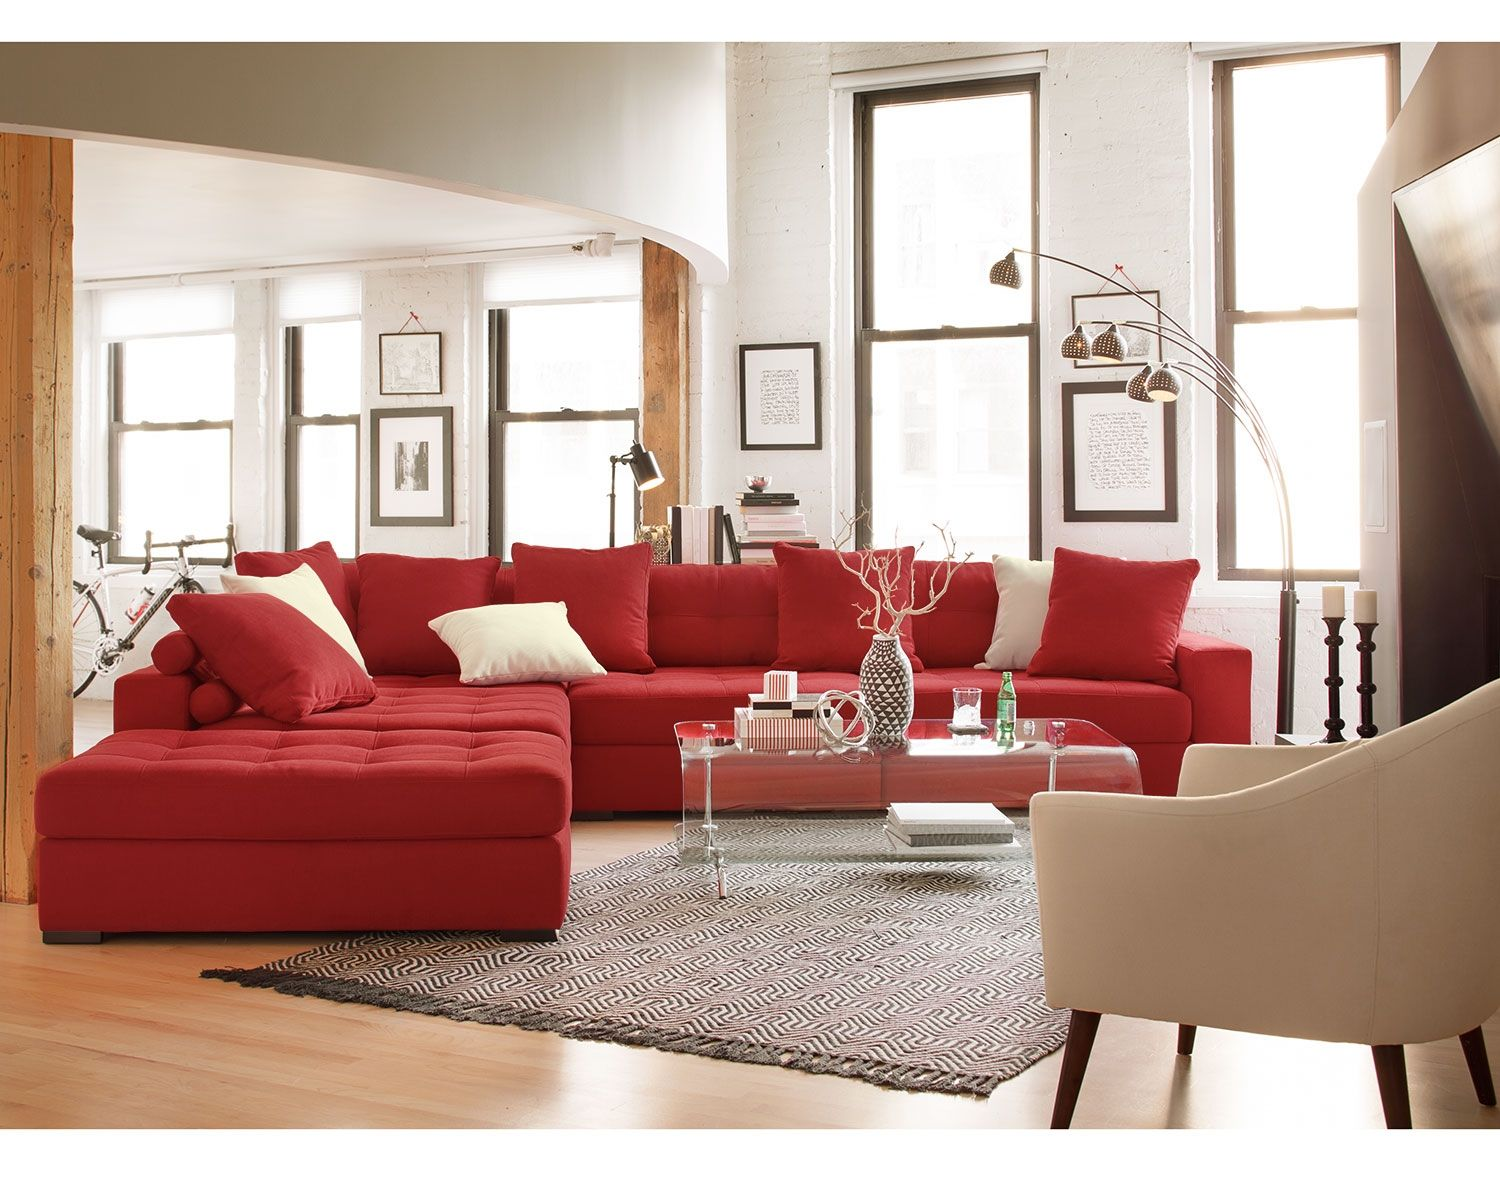 The Venti Red Sectional Collection | American Signature Furniture : american signature furniture sectionals - Sectionals, Sofas & Couches